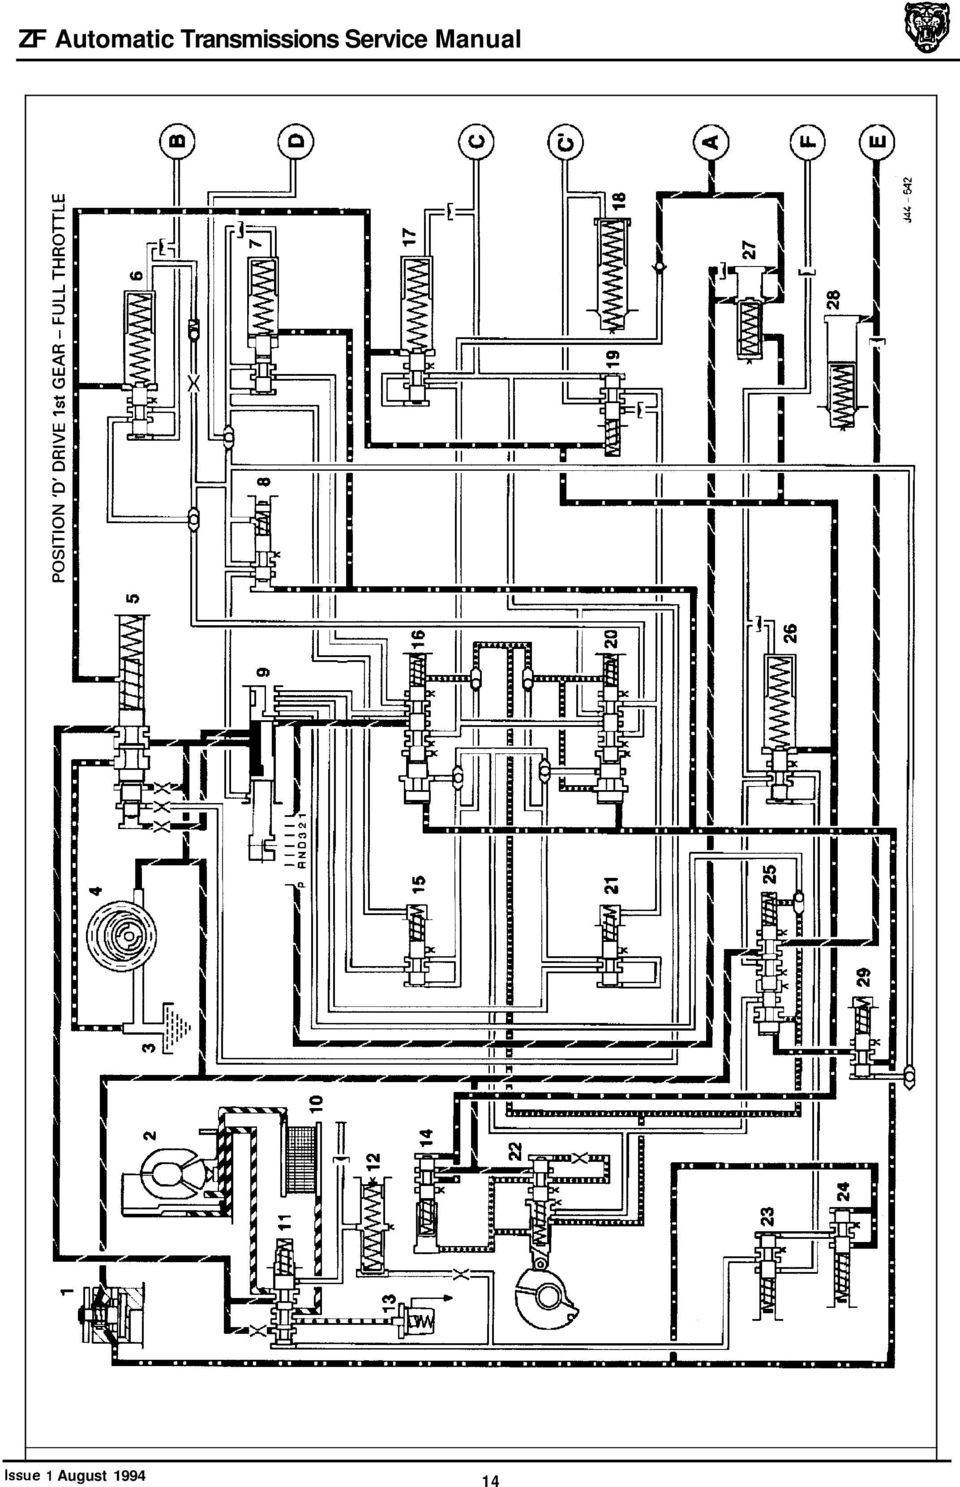 Automatic Transmissions Service Manual Pdf 1998 Toyota Supra Kick Panel Fuse Box Diagram 19 Q 9 14